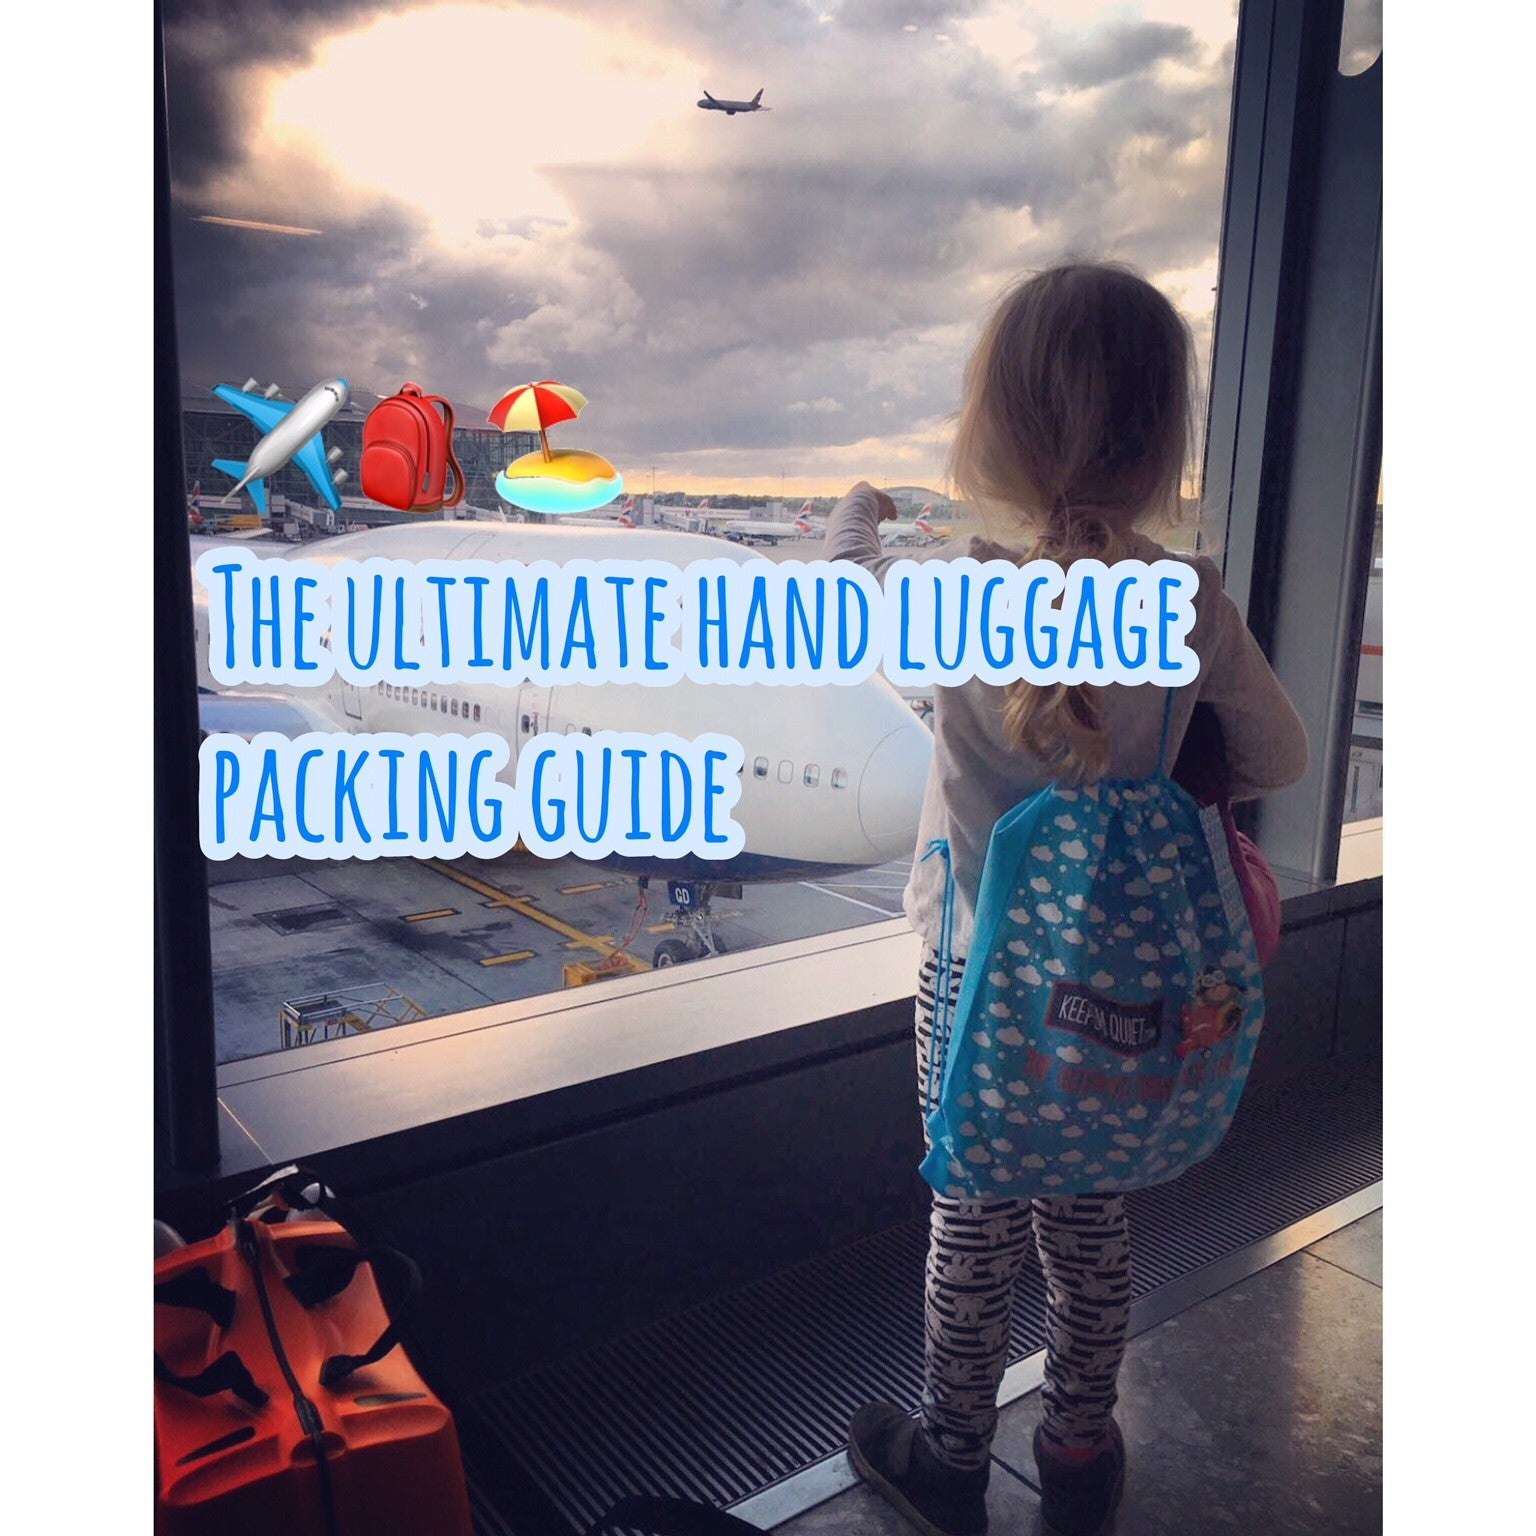 The ULTIMATE Hand Luggage Packing Guide